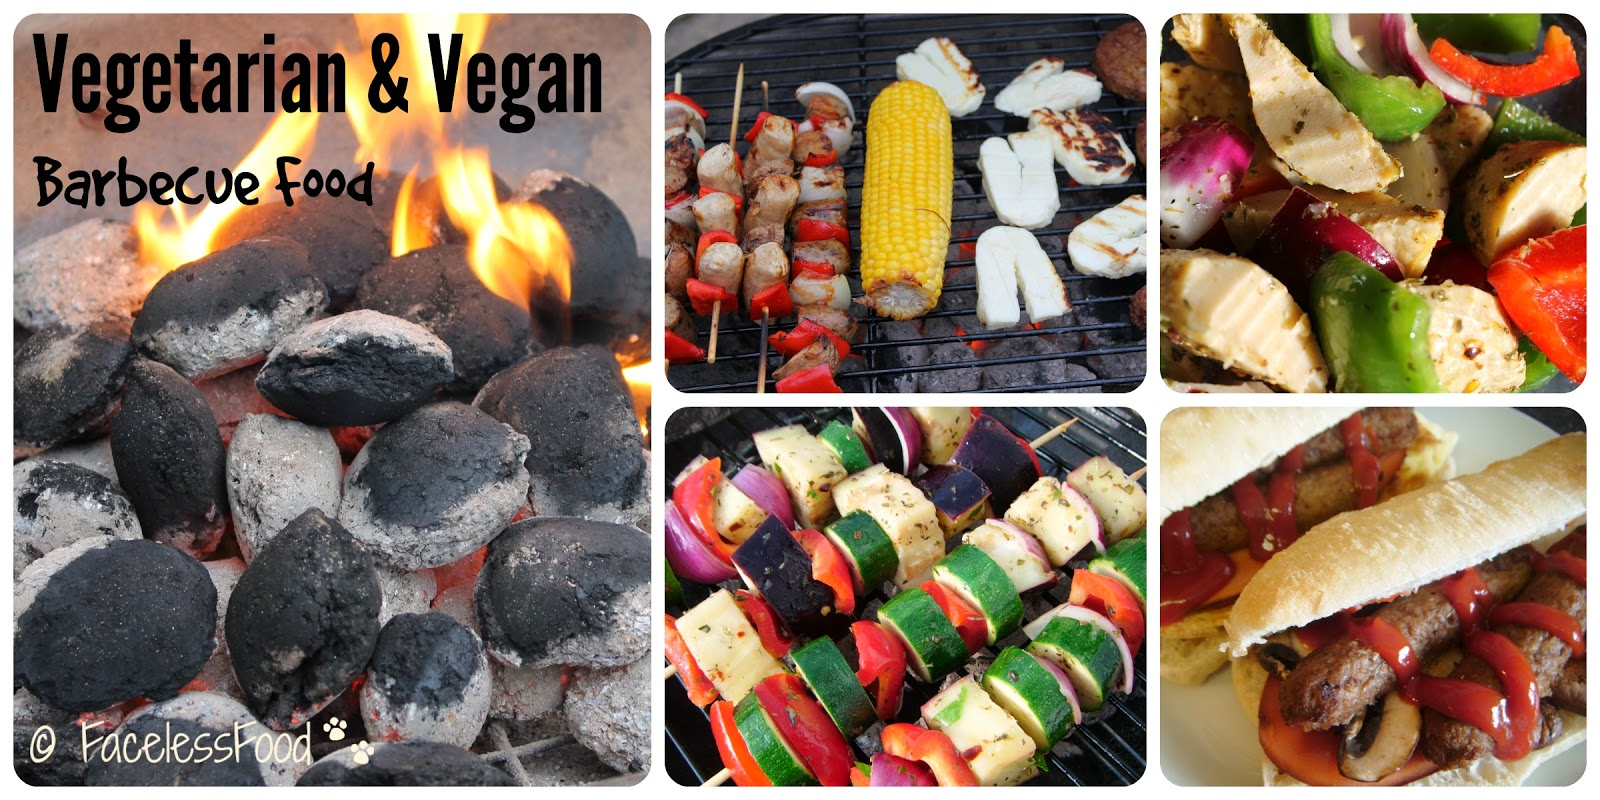 We dont eat anything with a face vegetarian and vegan barbecue recipes vegetarian and vegan food cooking on a barbecue forumfinder Gallery